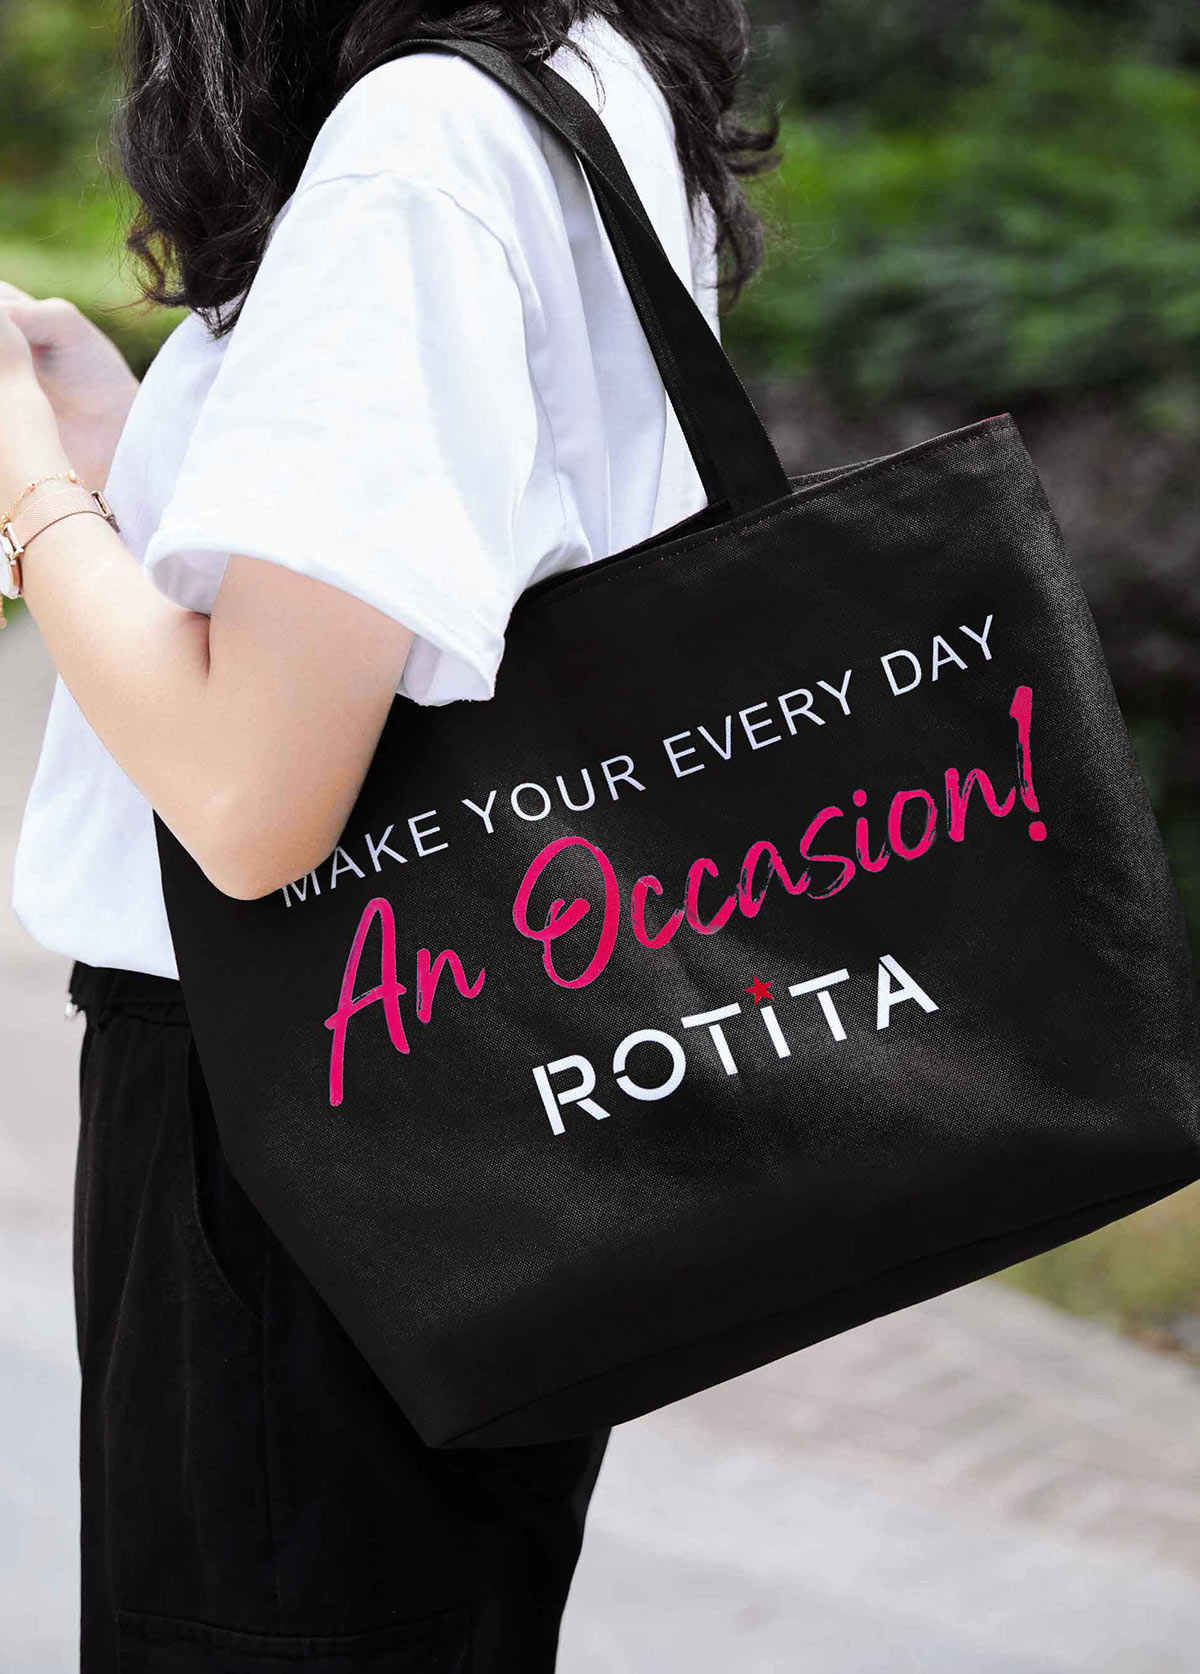 ROTITA 42 X 31cm Black Letter Print Canvas Bag